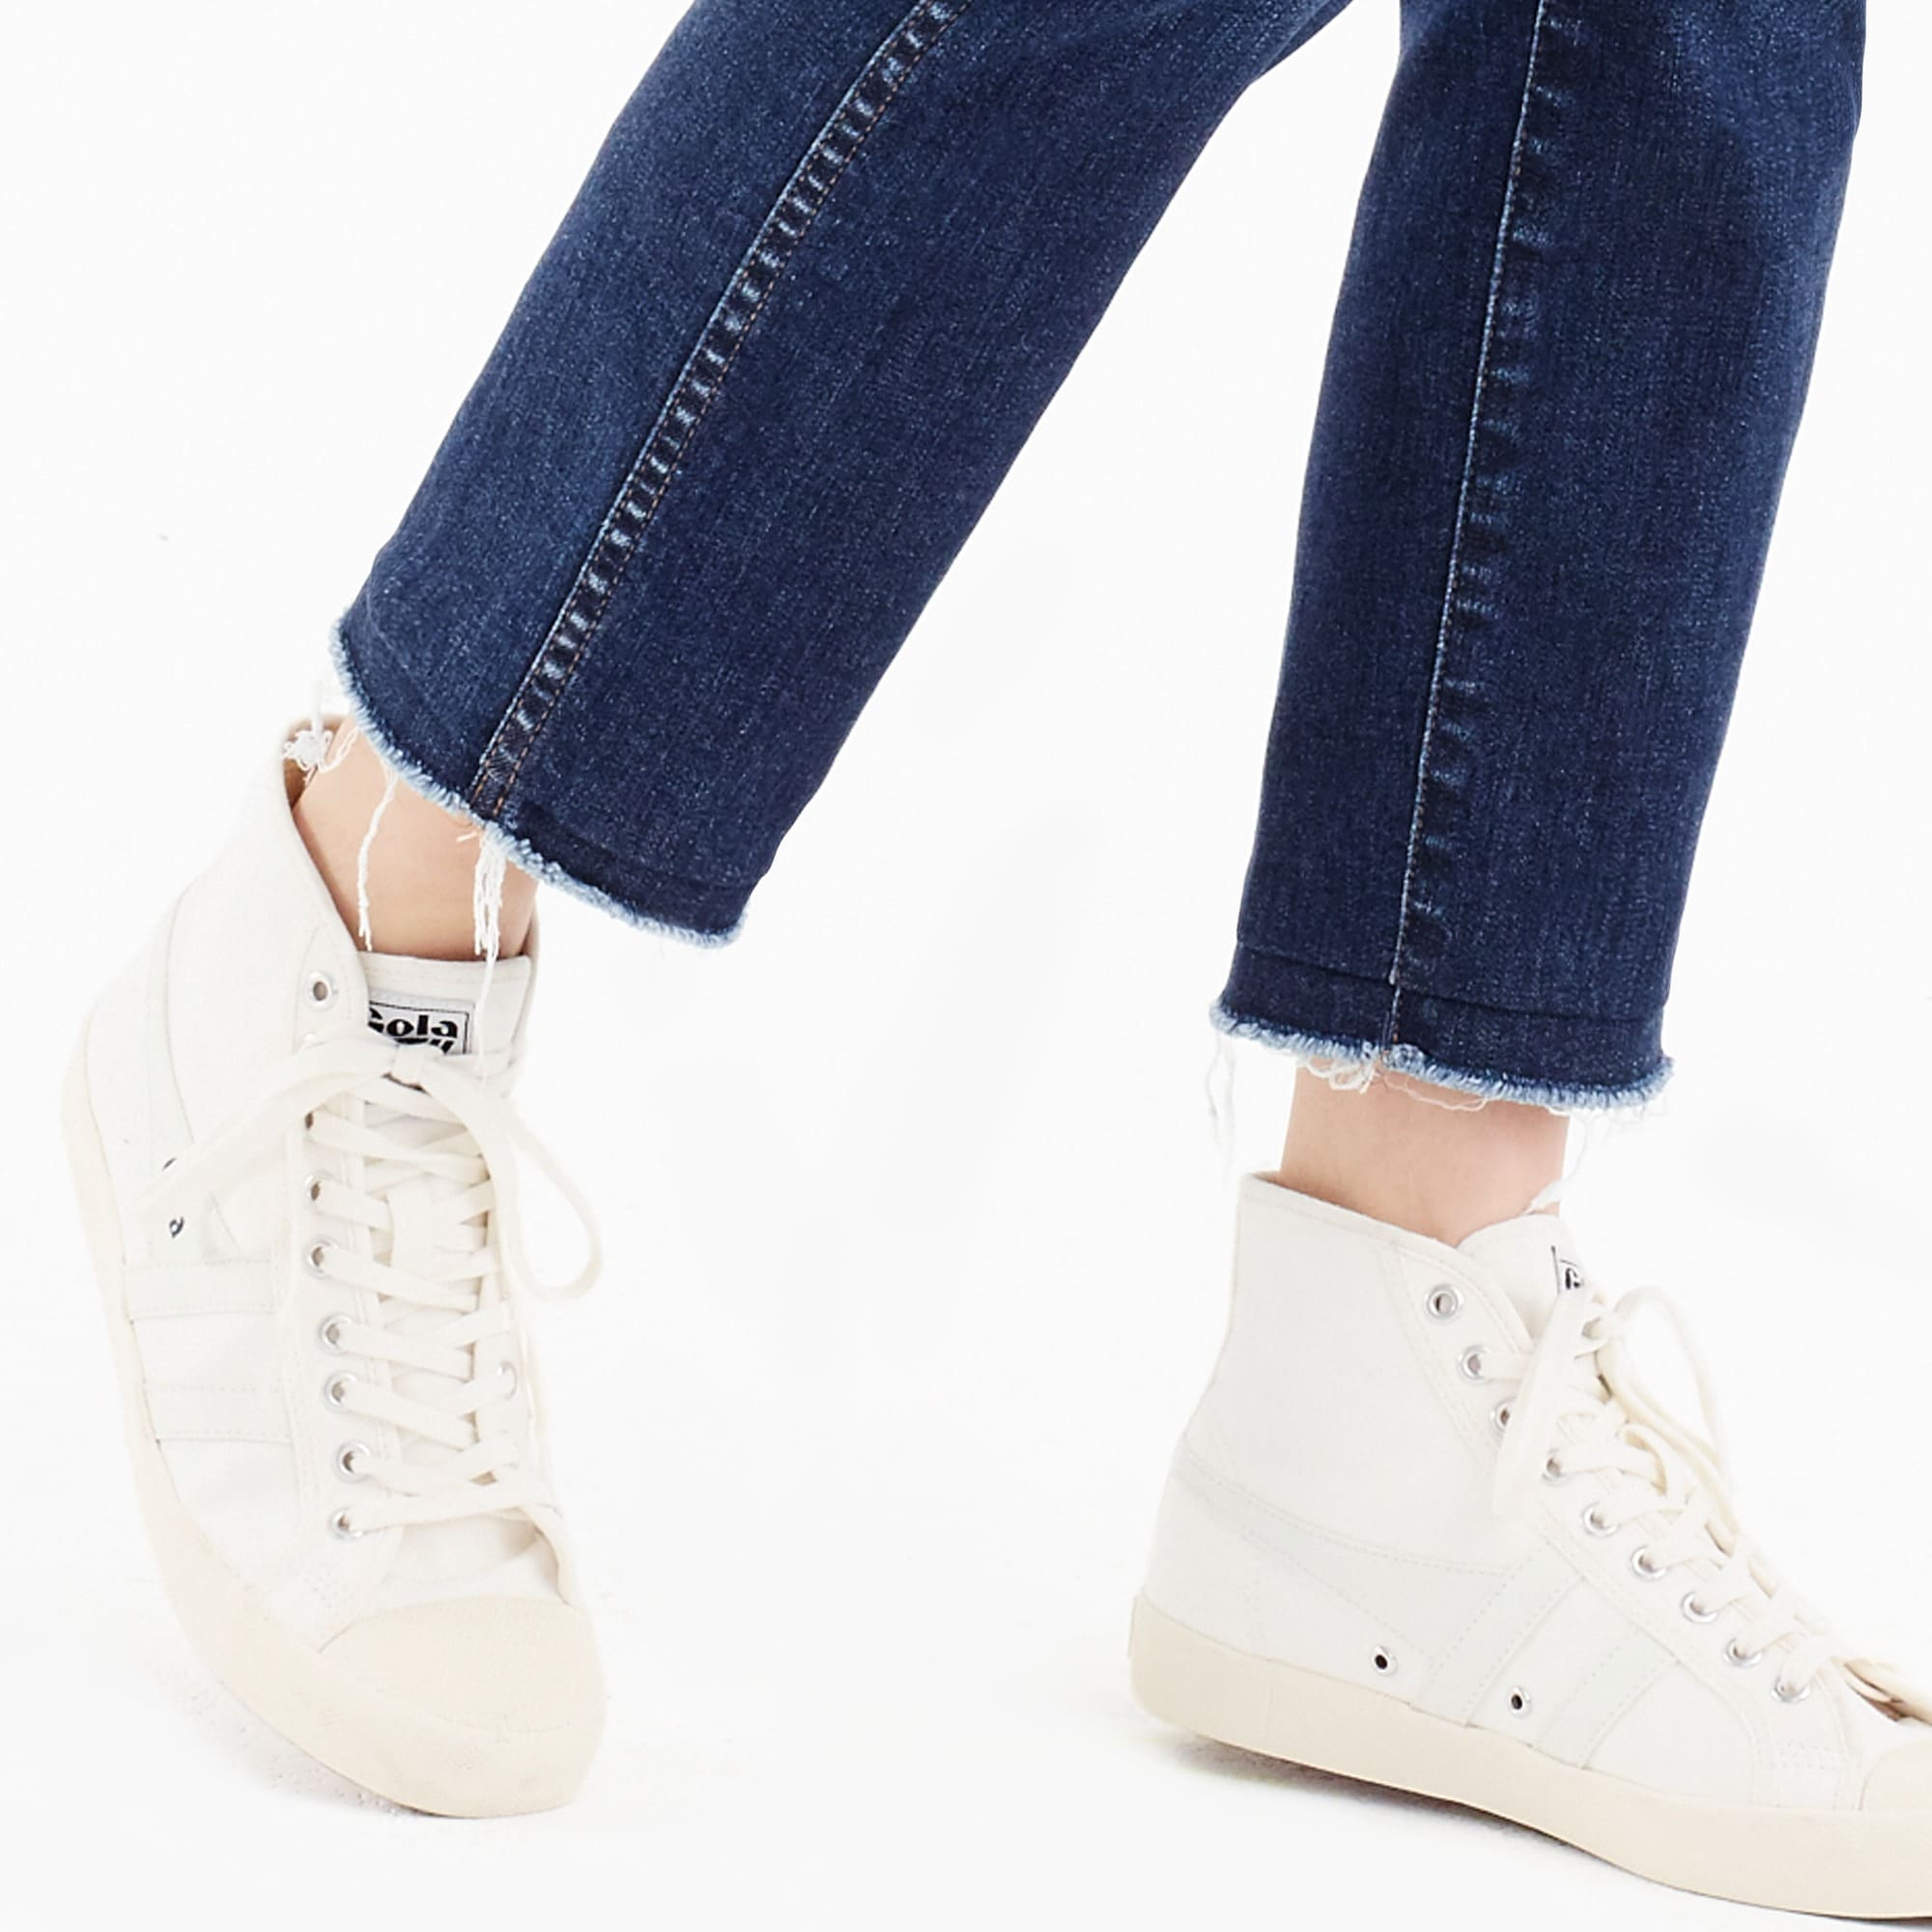 Gola® for J.Crew Coaster high-top sneaker